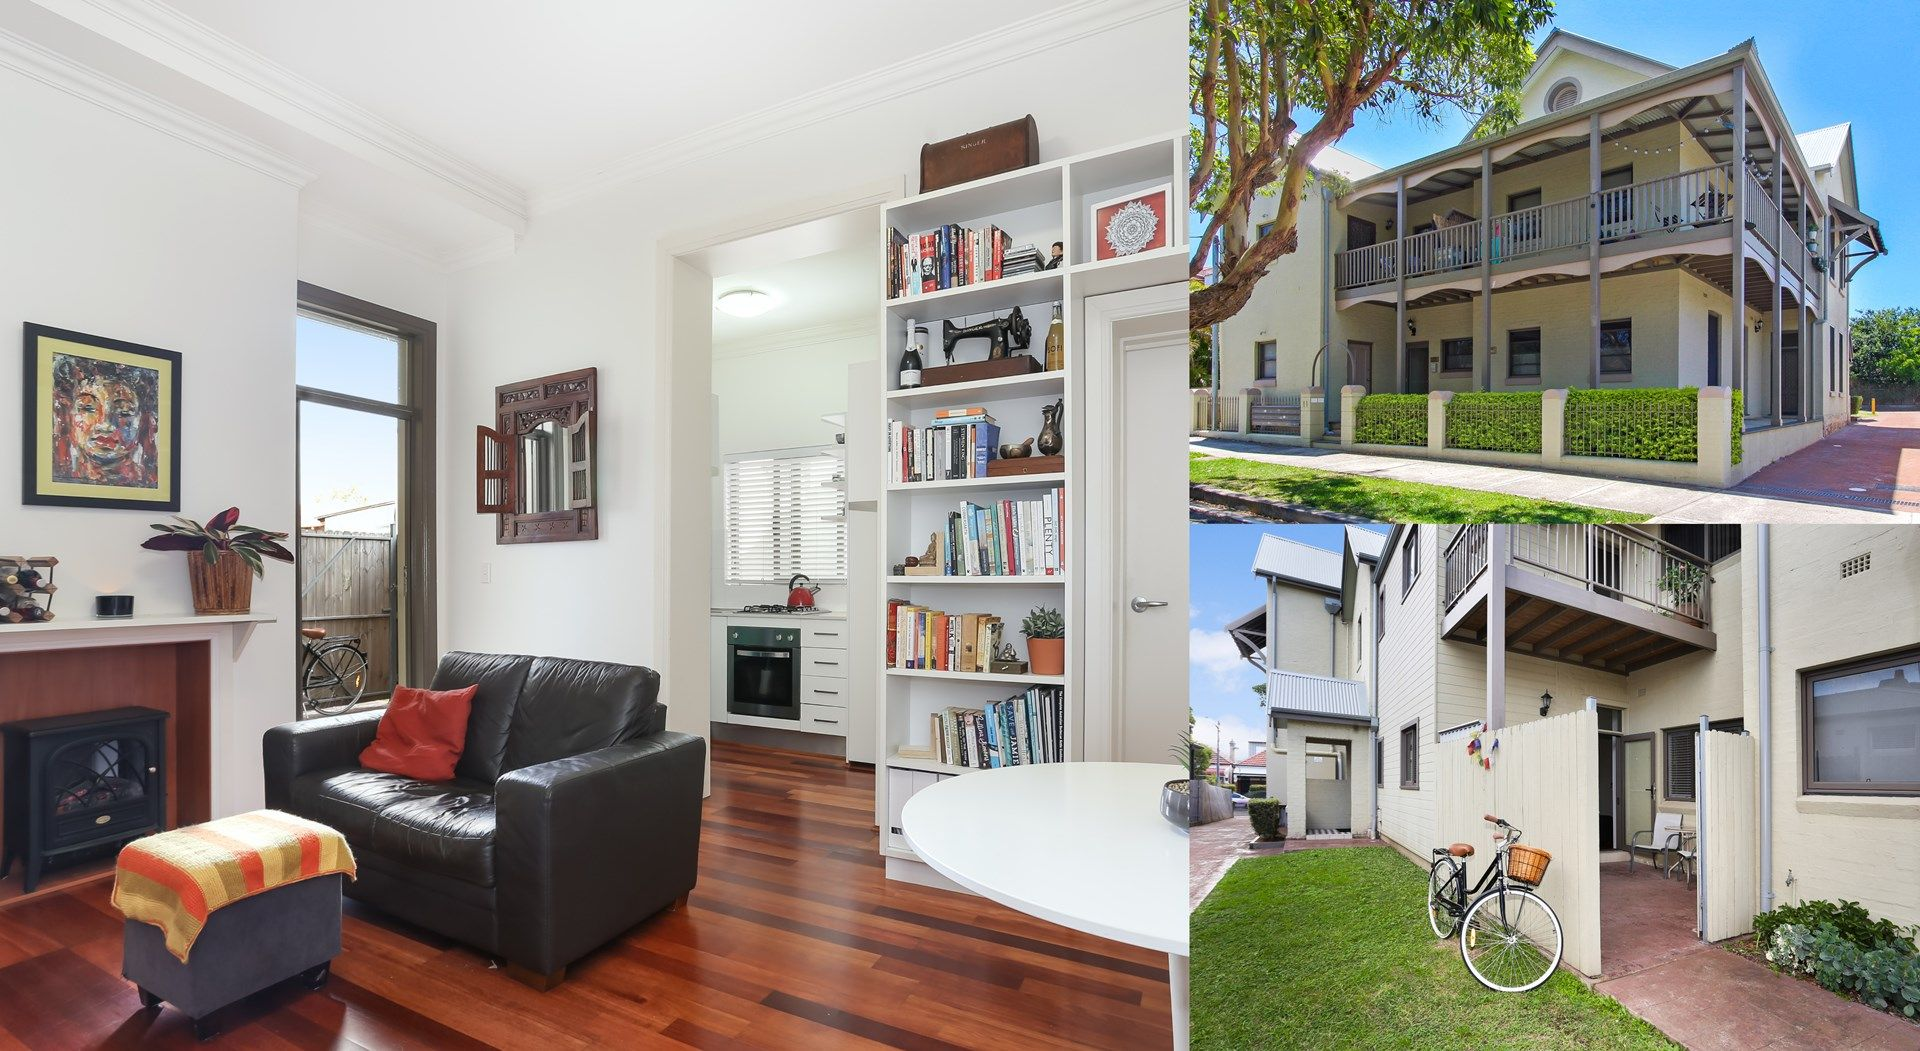 3/11 Woodcourt Street, Marrickville NSW 2204, Image 0